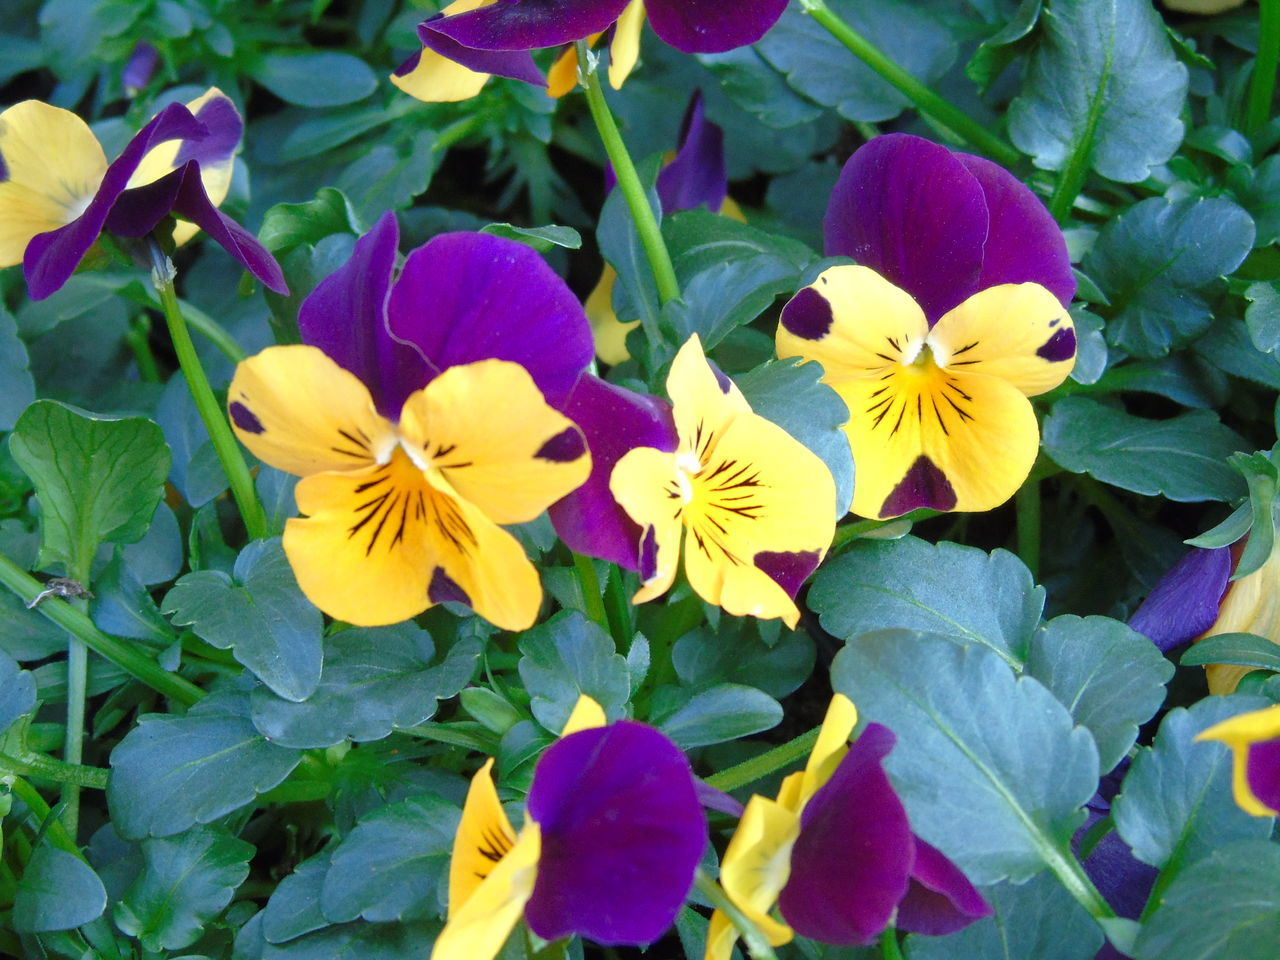 Violets don't necessarily have to be violet :) Beauty In Nature Blooming Close-up Day Feel Feelings Flower Flower Head Fragility Freshness Green Color Growth Hope Leaf Nature No People Outdoors Petal Plant Spngbb Spngtime Spring